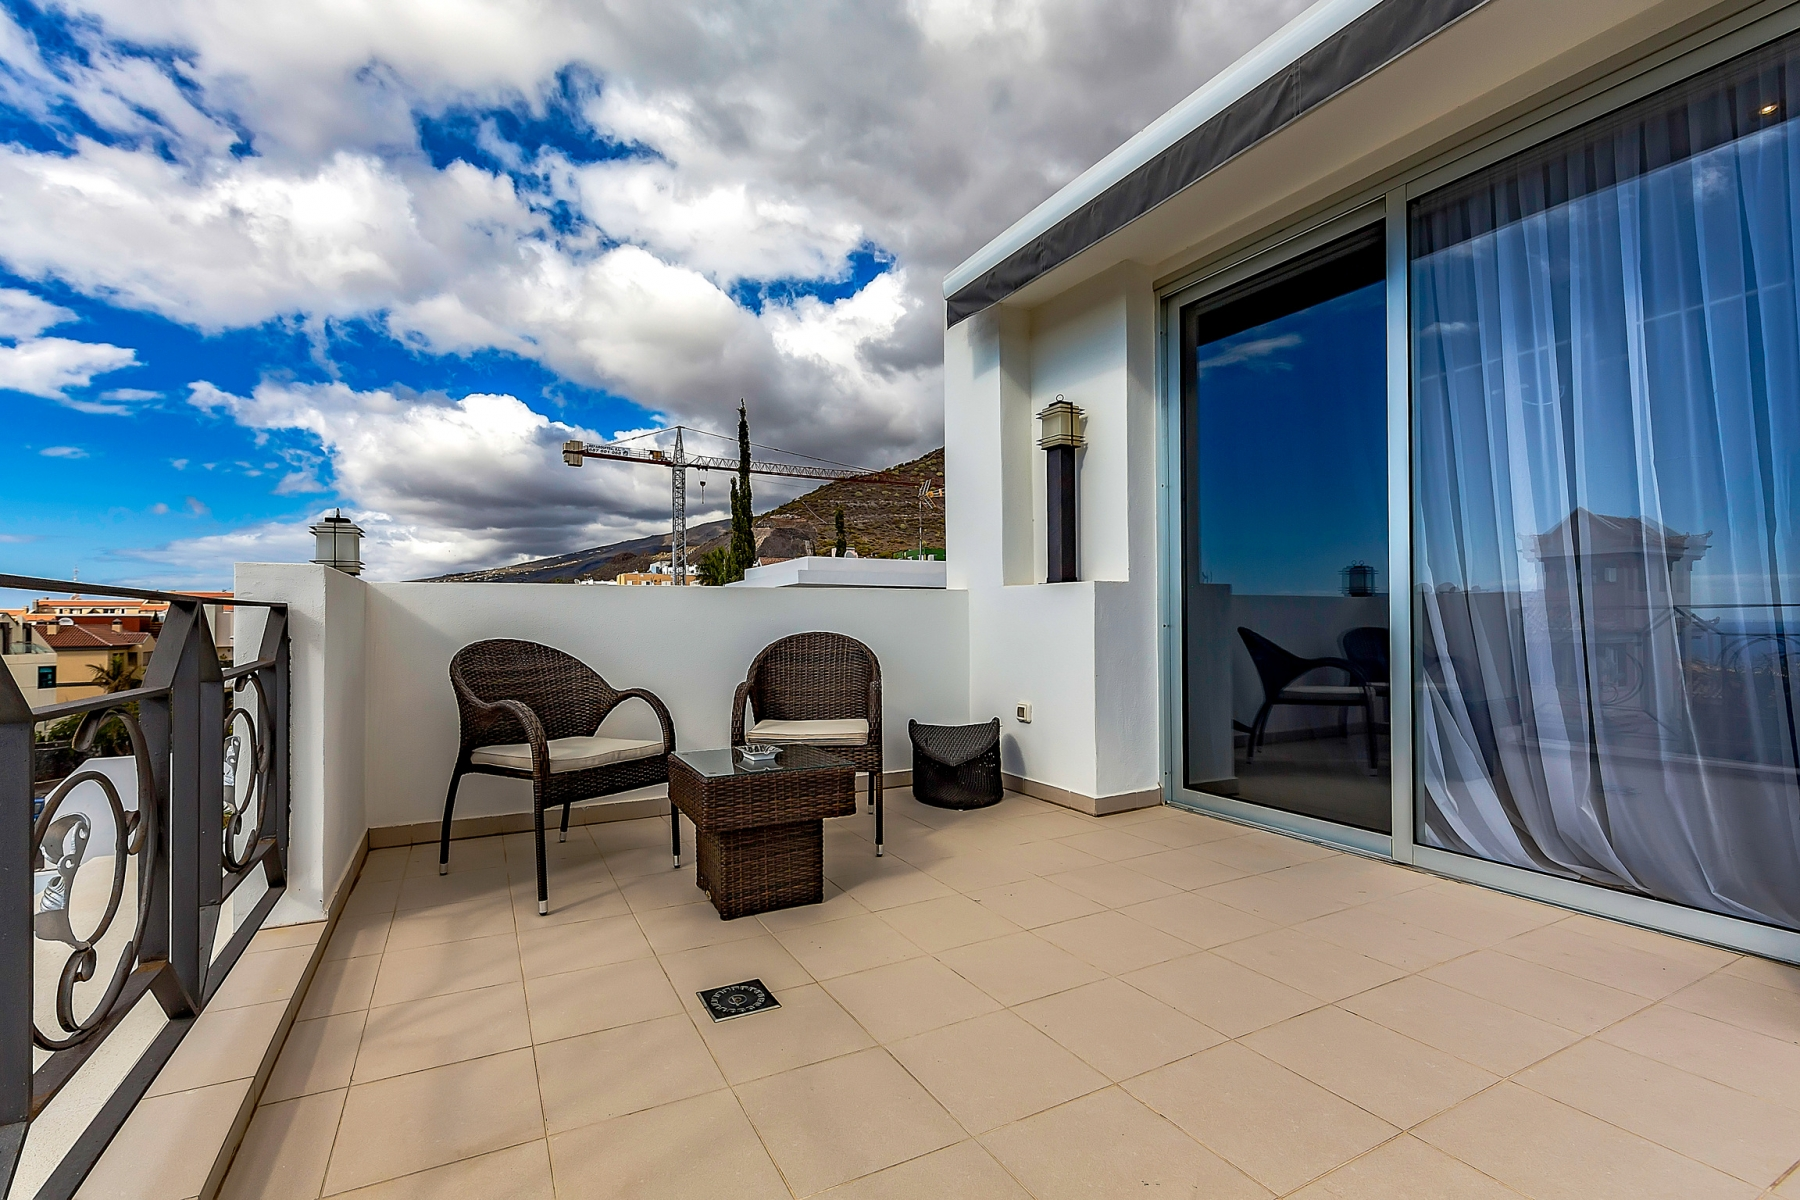 Properties for Sale in Tenerife, Canary Islands, Spain   SylkWayStar Real Estate. Luxury villa in the fashionable area of the south of the island of Tenerife – Madroñal.. Image-22764